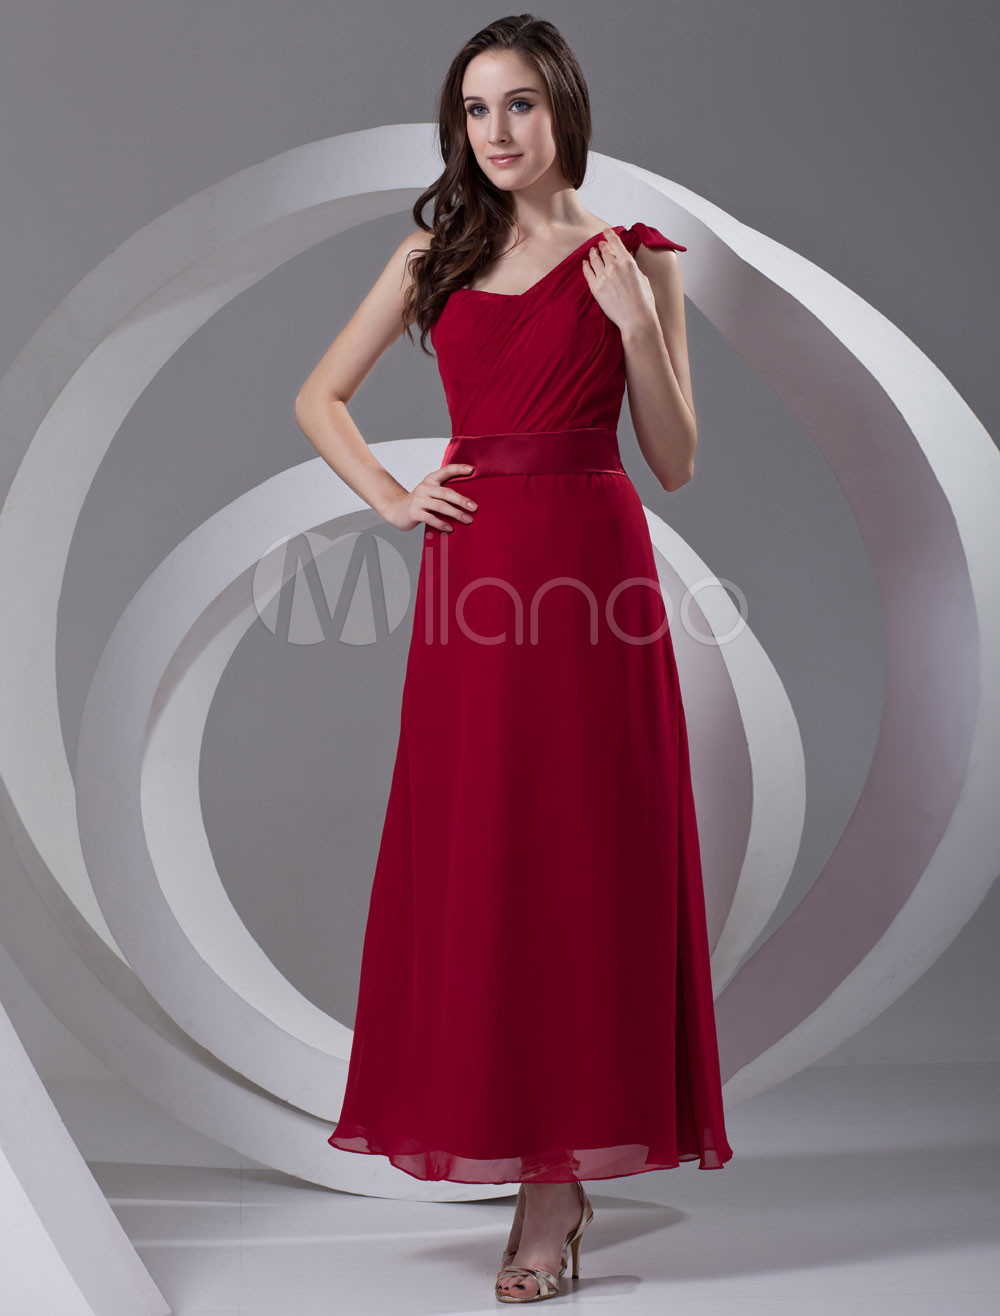 A-line Burgundy Chiffon Bow One-Shoulder Ankle-Length Bridesmaid Dress